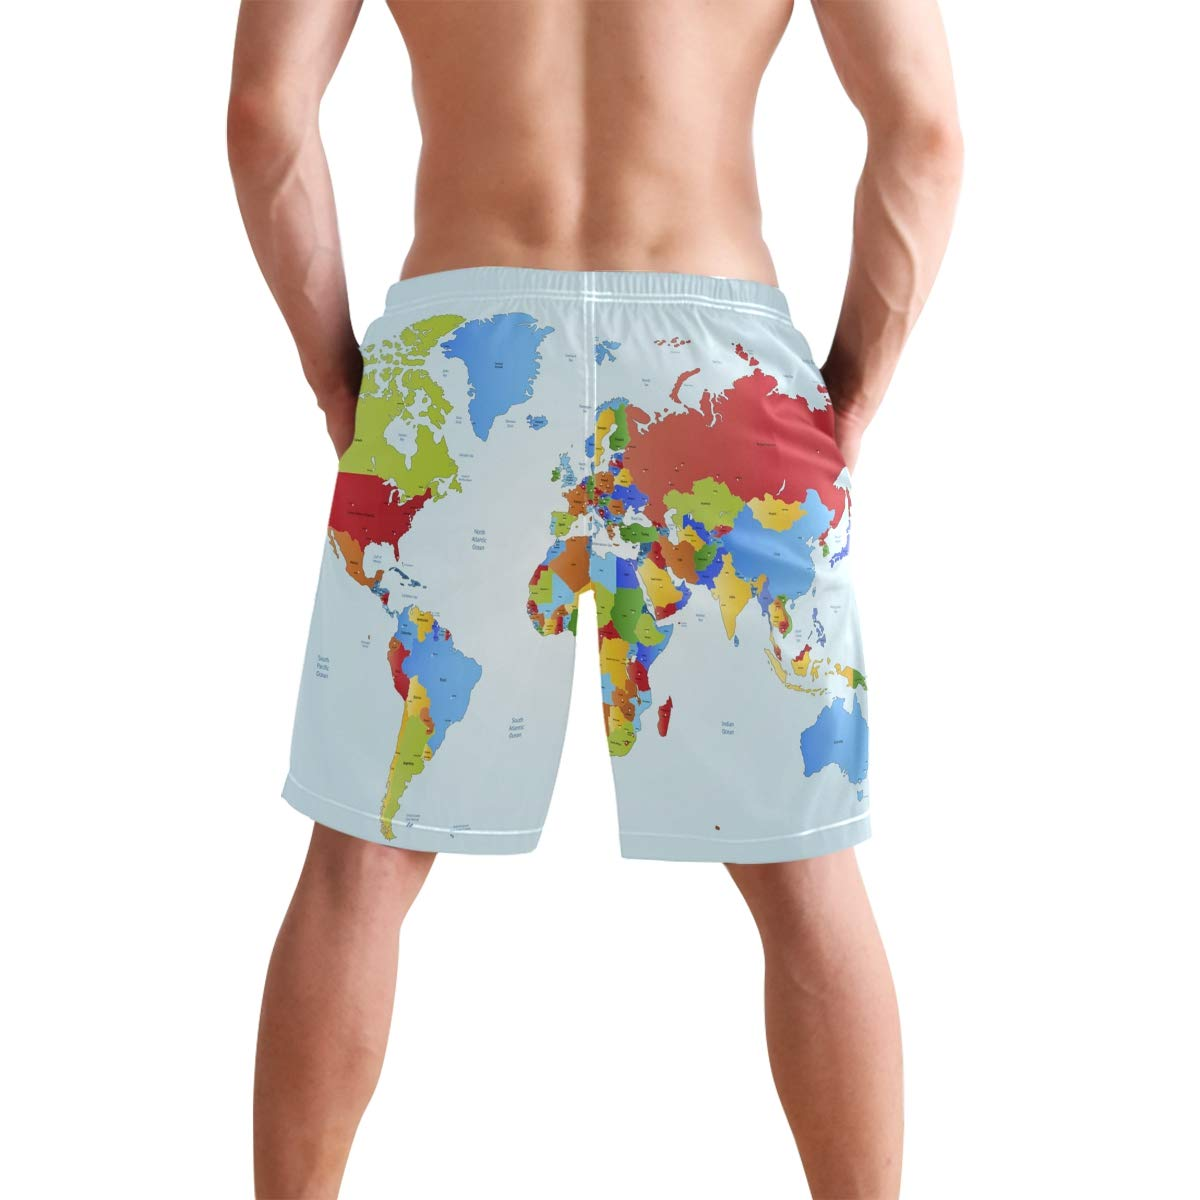 JERECY Mens Swim Trunks Educational World Map Quick Dry Board Shorts with Drawstring and Pockets